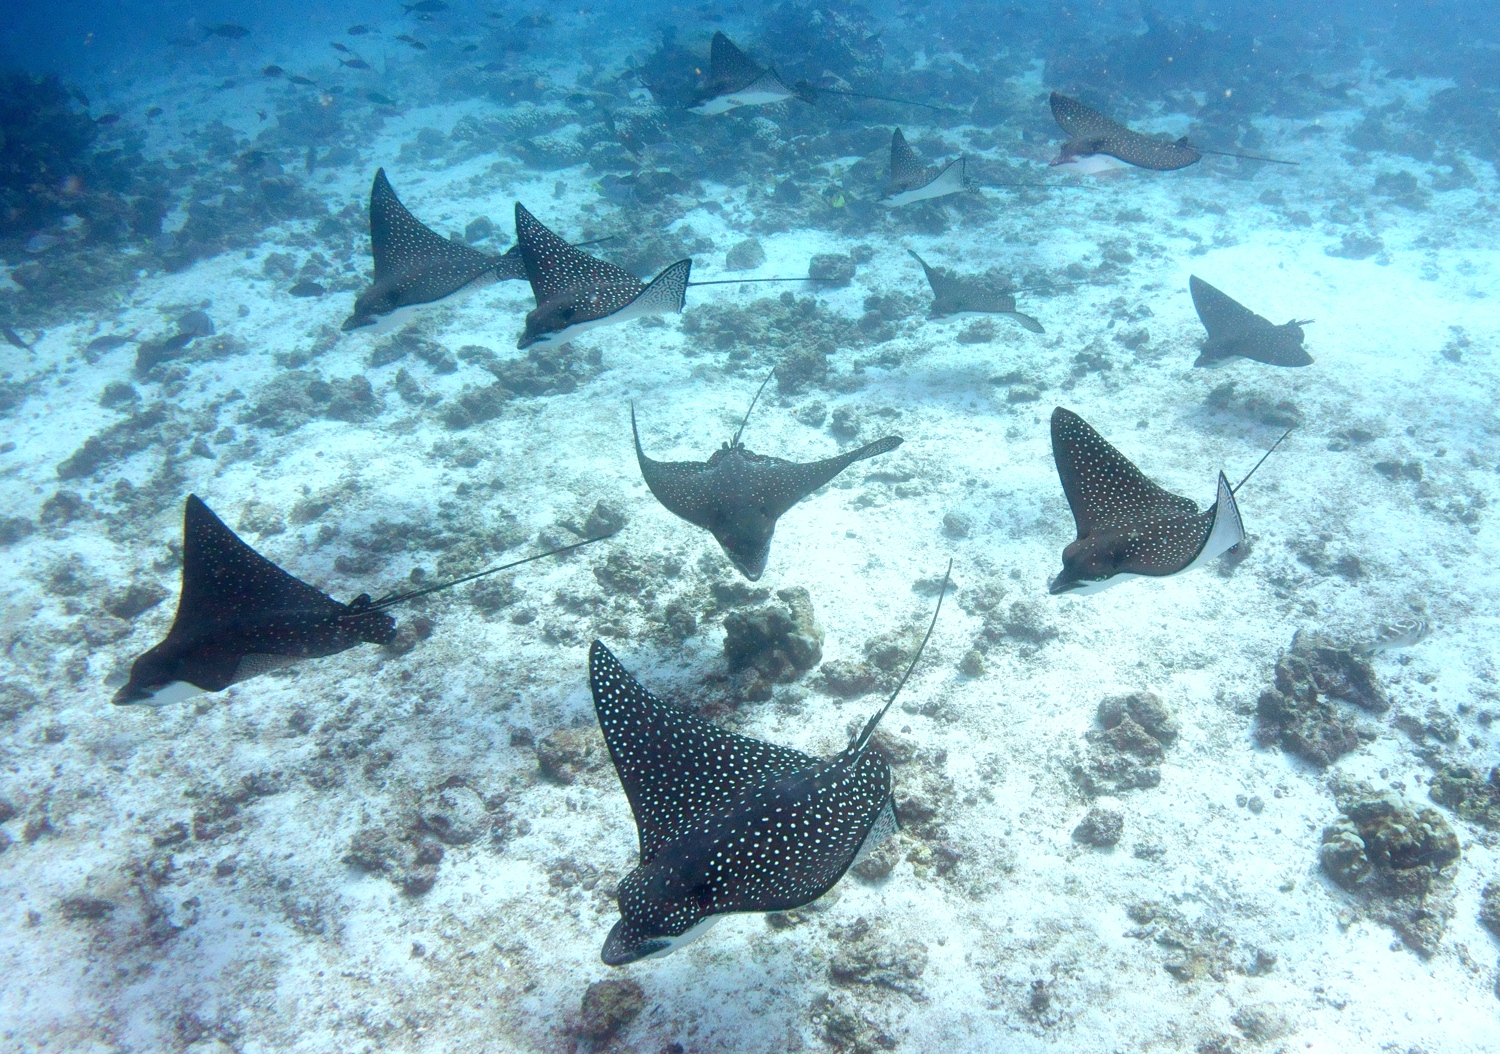 Spotted eagle rays by Dave Currey